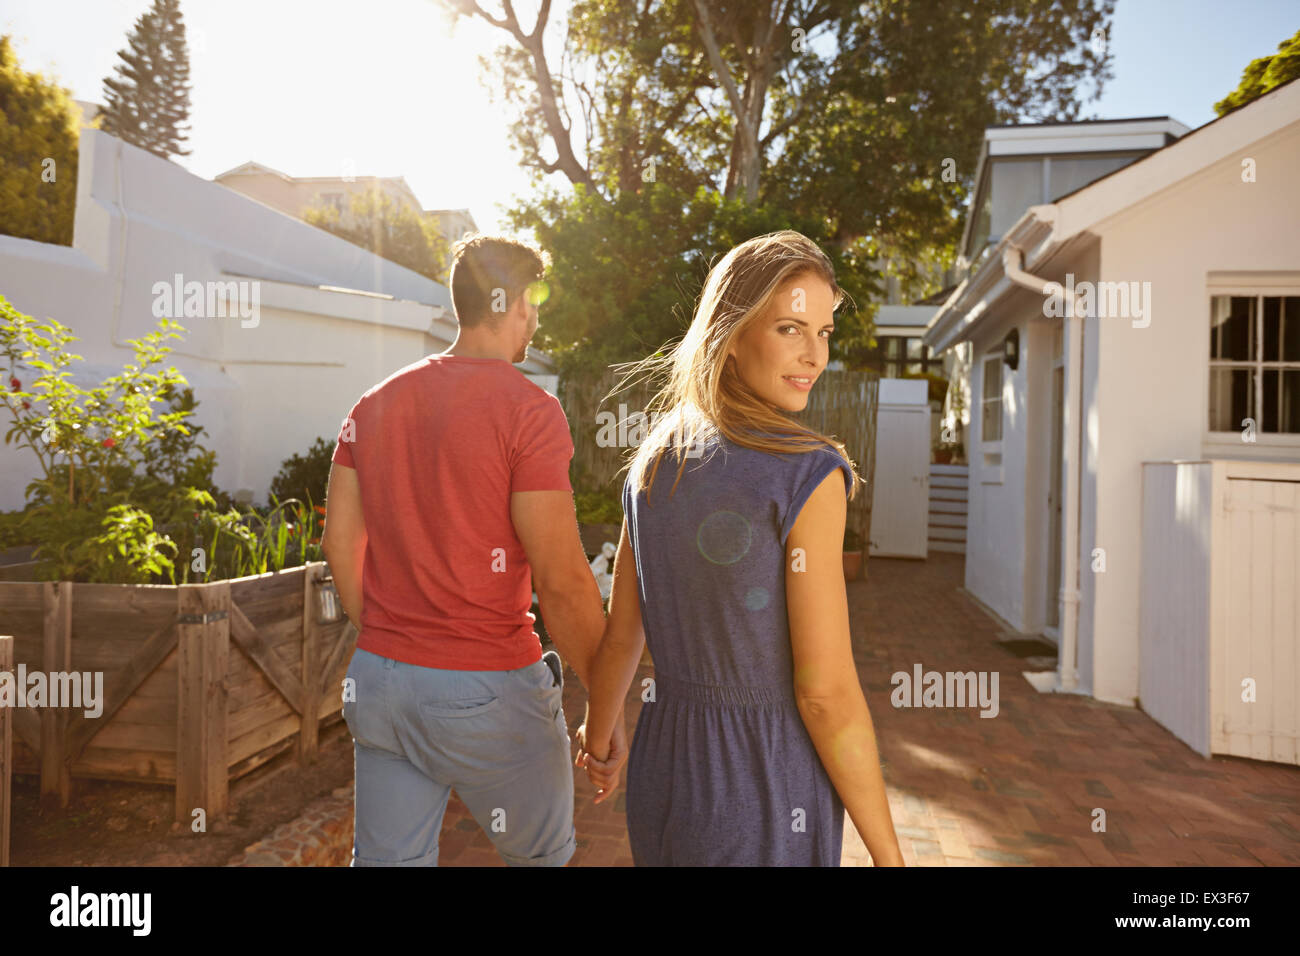 Young couple walking in the backyard holding hand in hand on a bright summer day, with woman looking back over shoulder - Stock Image